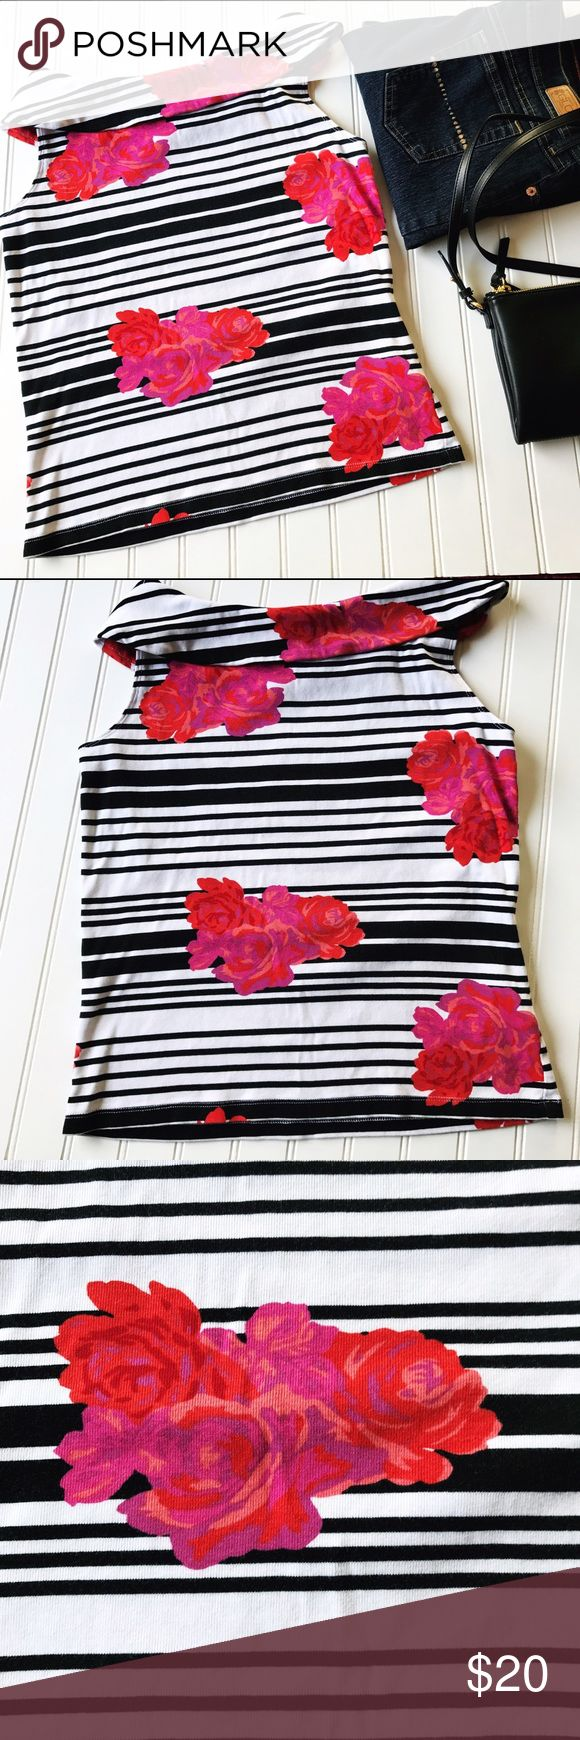 "Rafaella Sleeveless Black And White Top Rafaella Sleeveless Black And White Top with pink and red roses.    100% Cotton   Bust 36"" Length 20"" Rafaella Tops Tees - Short Sleeve"